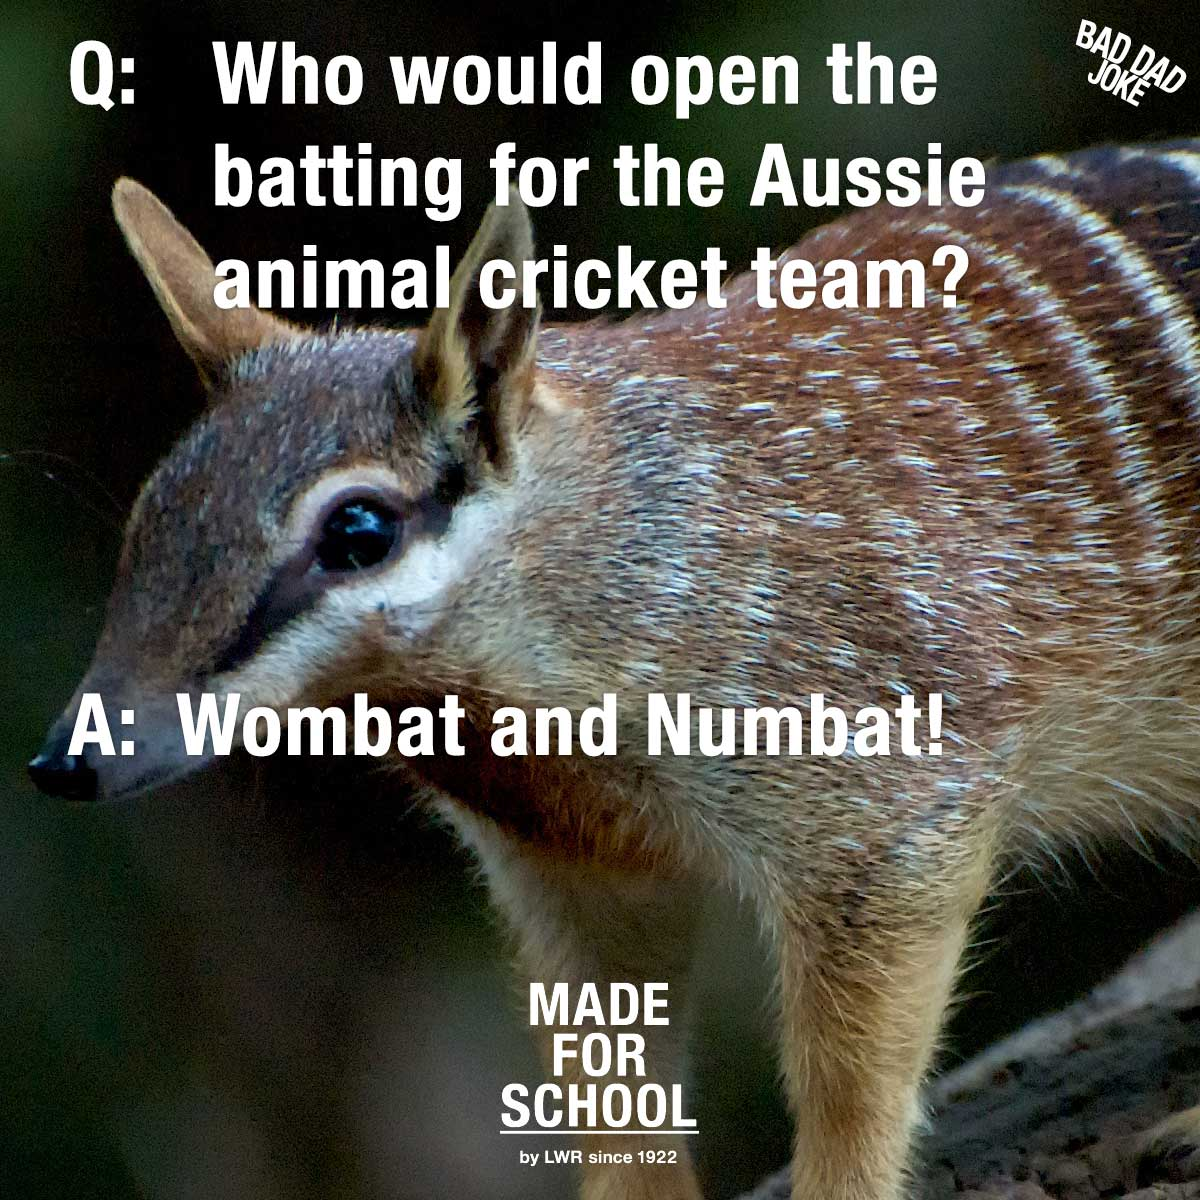 Aussie Animal Cricketers